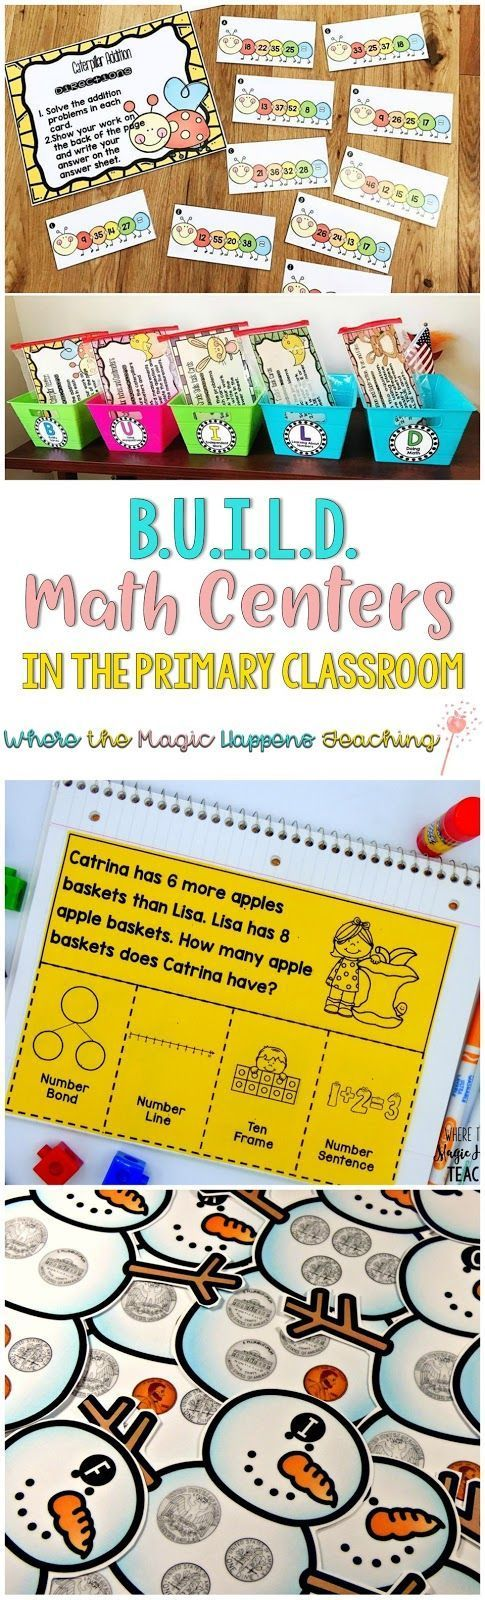 Where the Magic Happens: BUILD Math Centers in the Primary Classroom  Great information on why BUILD math centers is a great organizational and instructional tool for your guided math block.